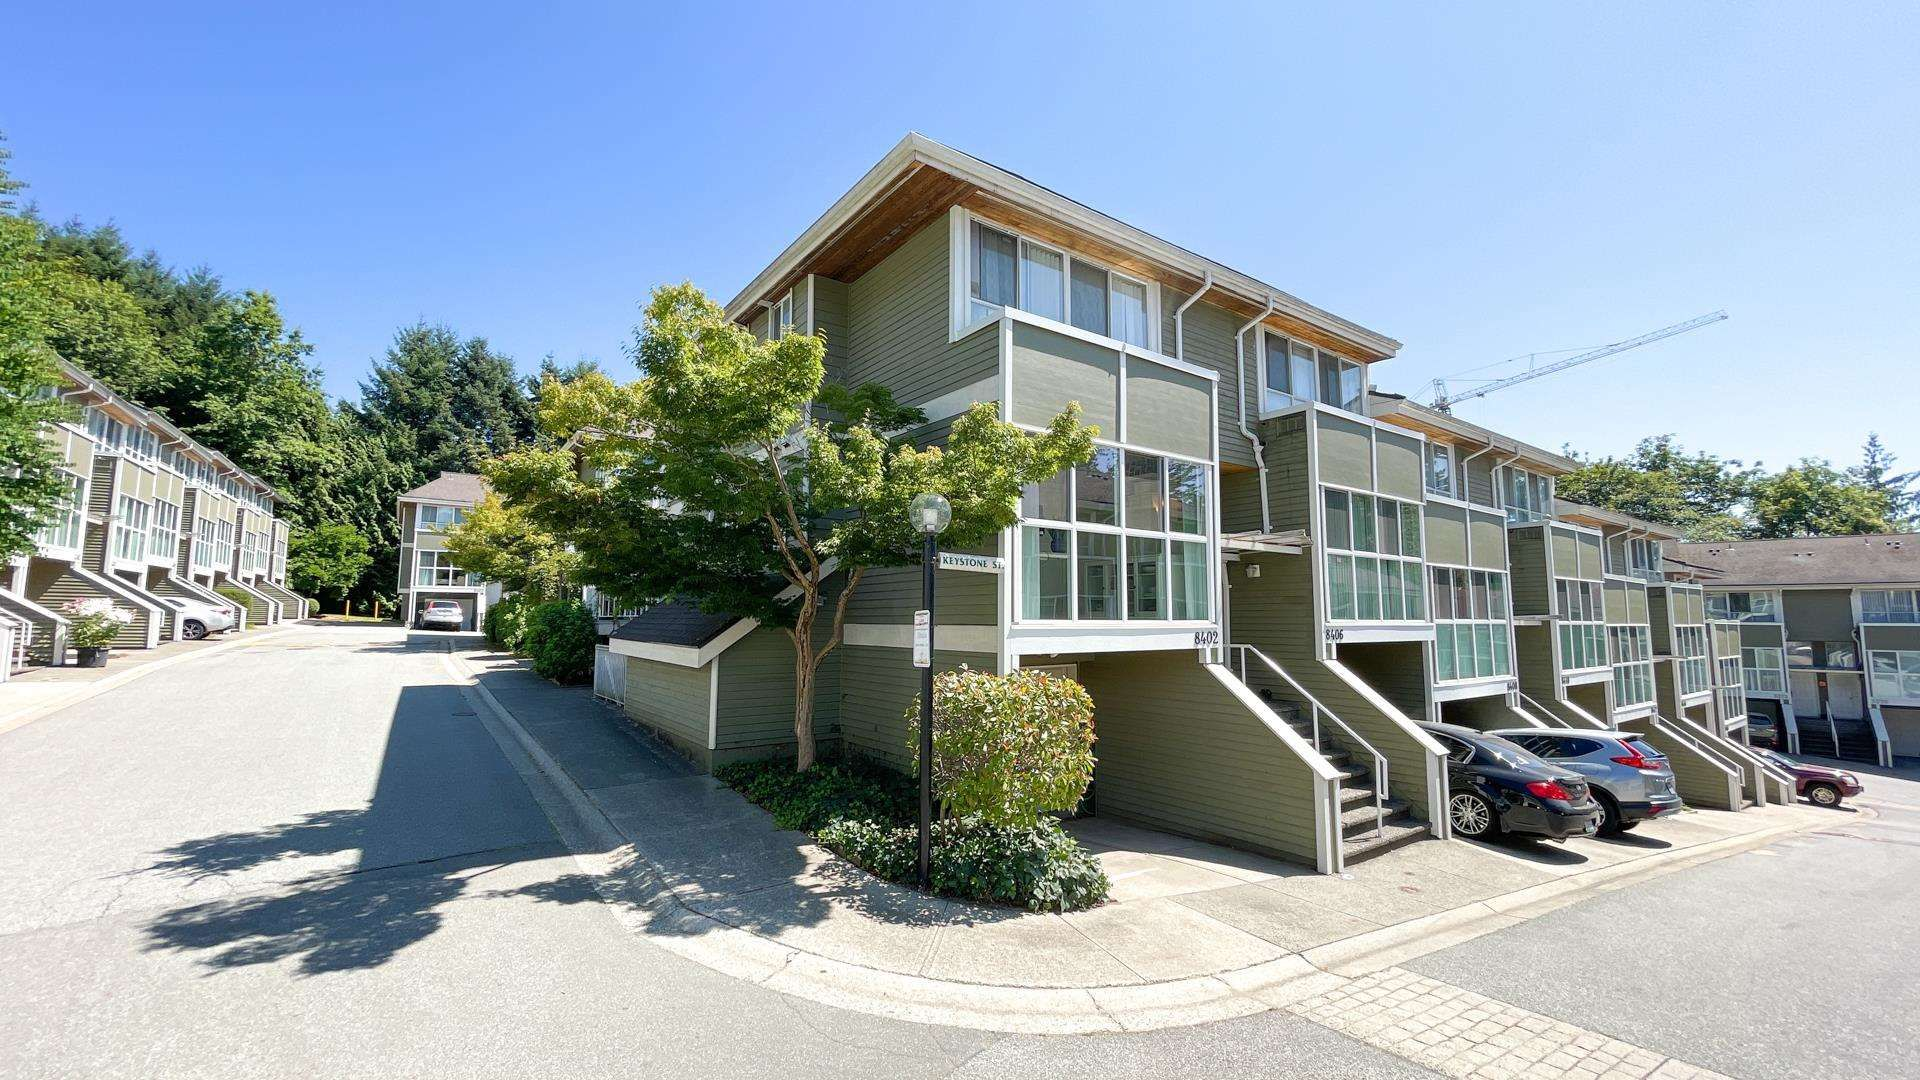 """Main Photo: 8402 KEYSTONE Street in Vancouver: Champlain Heights Townhouse for sale in """"Marine Woods"""" (Vancouver East)  : MLS®# R2606648"""